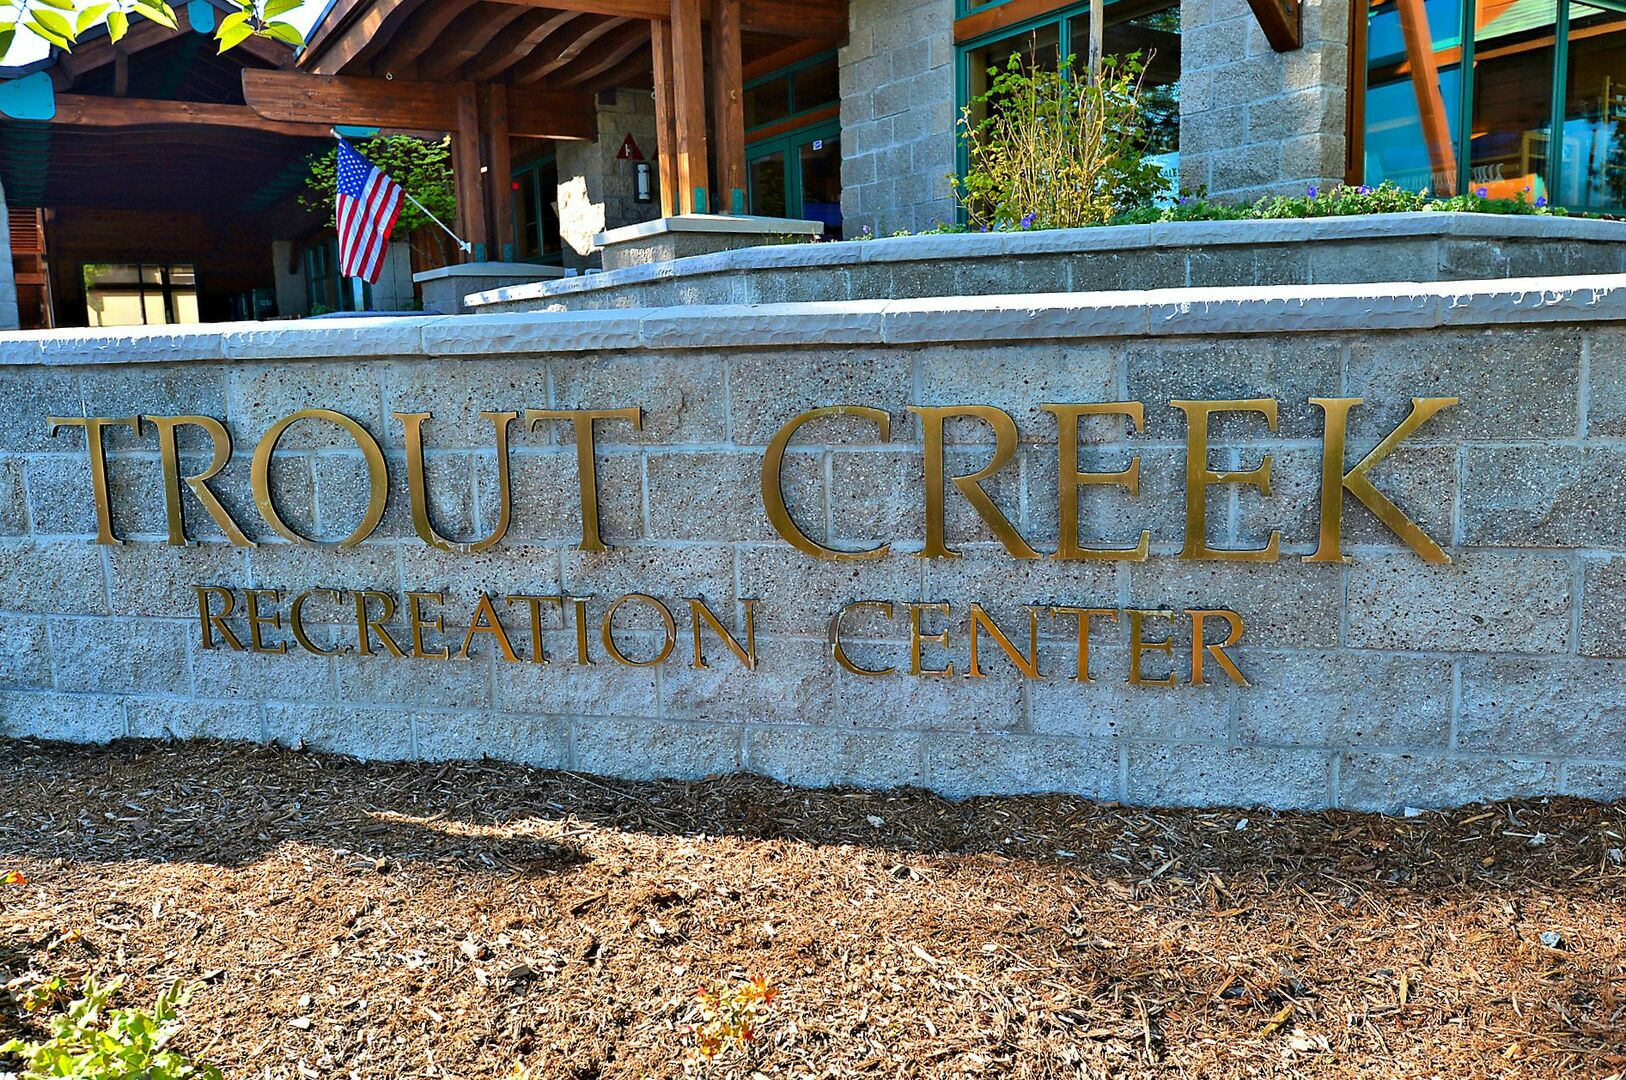 Wall with the name Trout Creek Recreation Center.